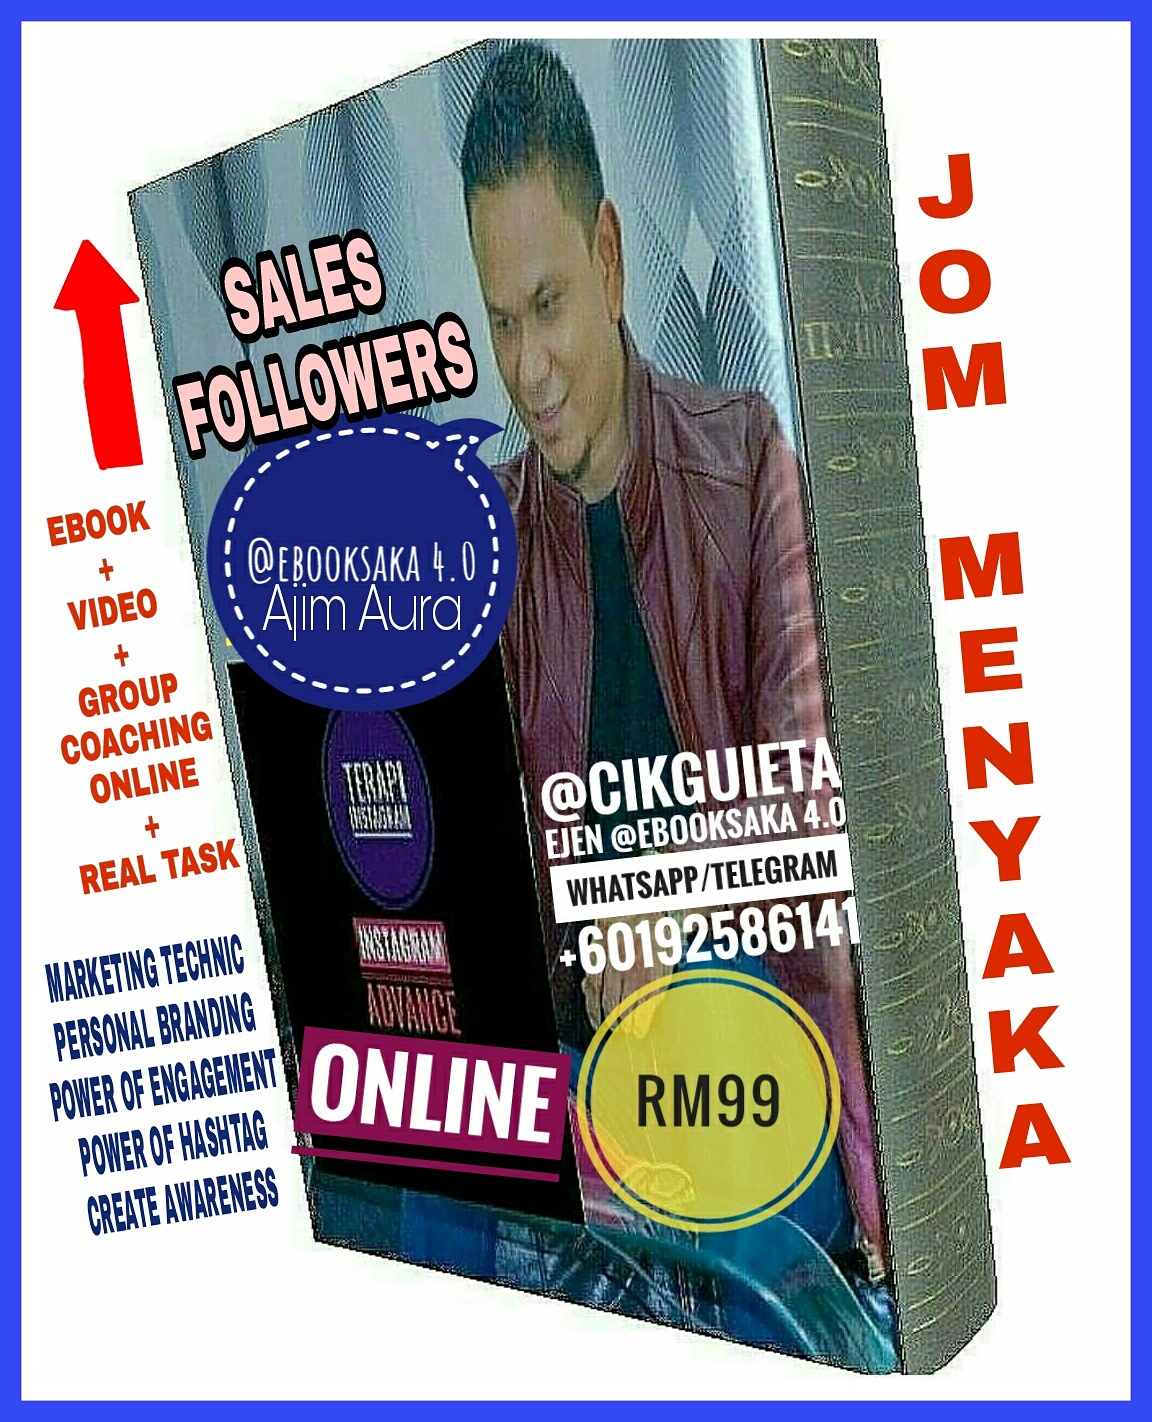 INGIN NAIKKAN SALES & FOLLOWERS?